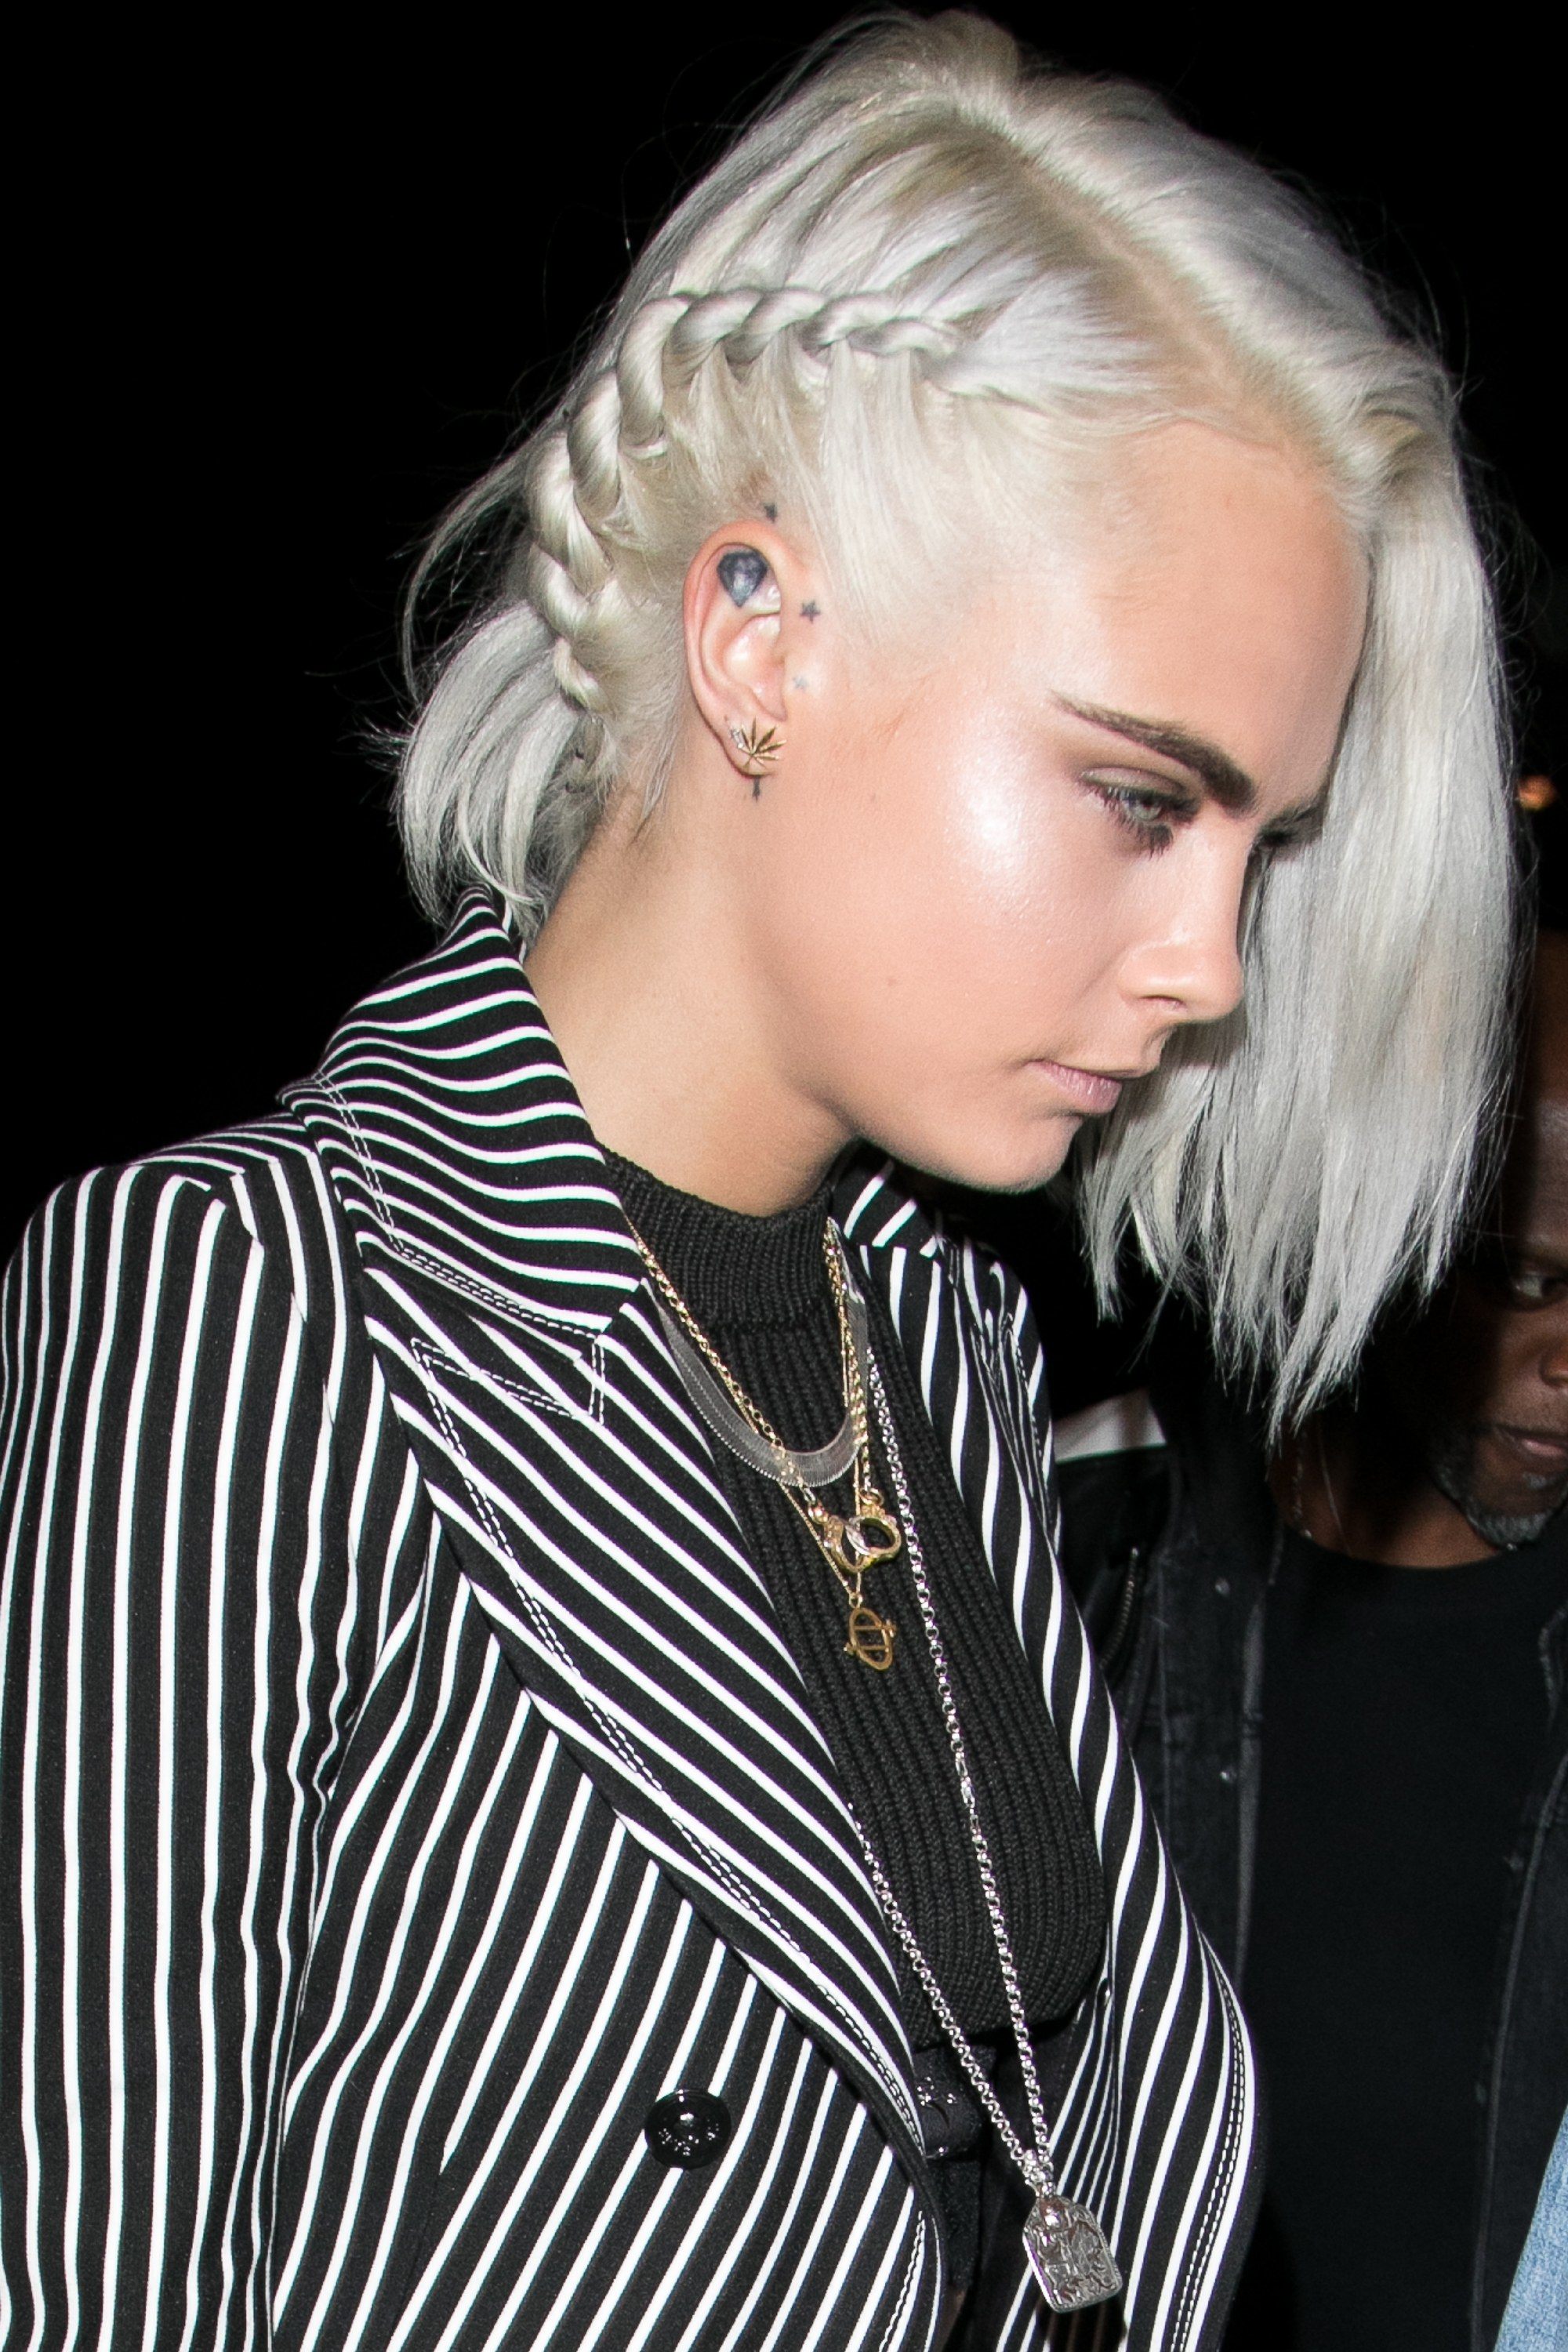 cara delevigne with platinum blonde, shoulder length bob, side-parted and braided on one side, wearing a black and white striped blazer, and black top